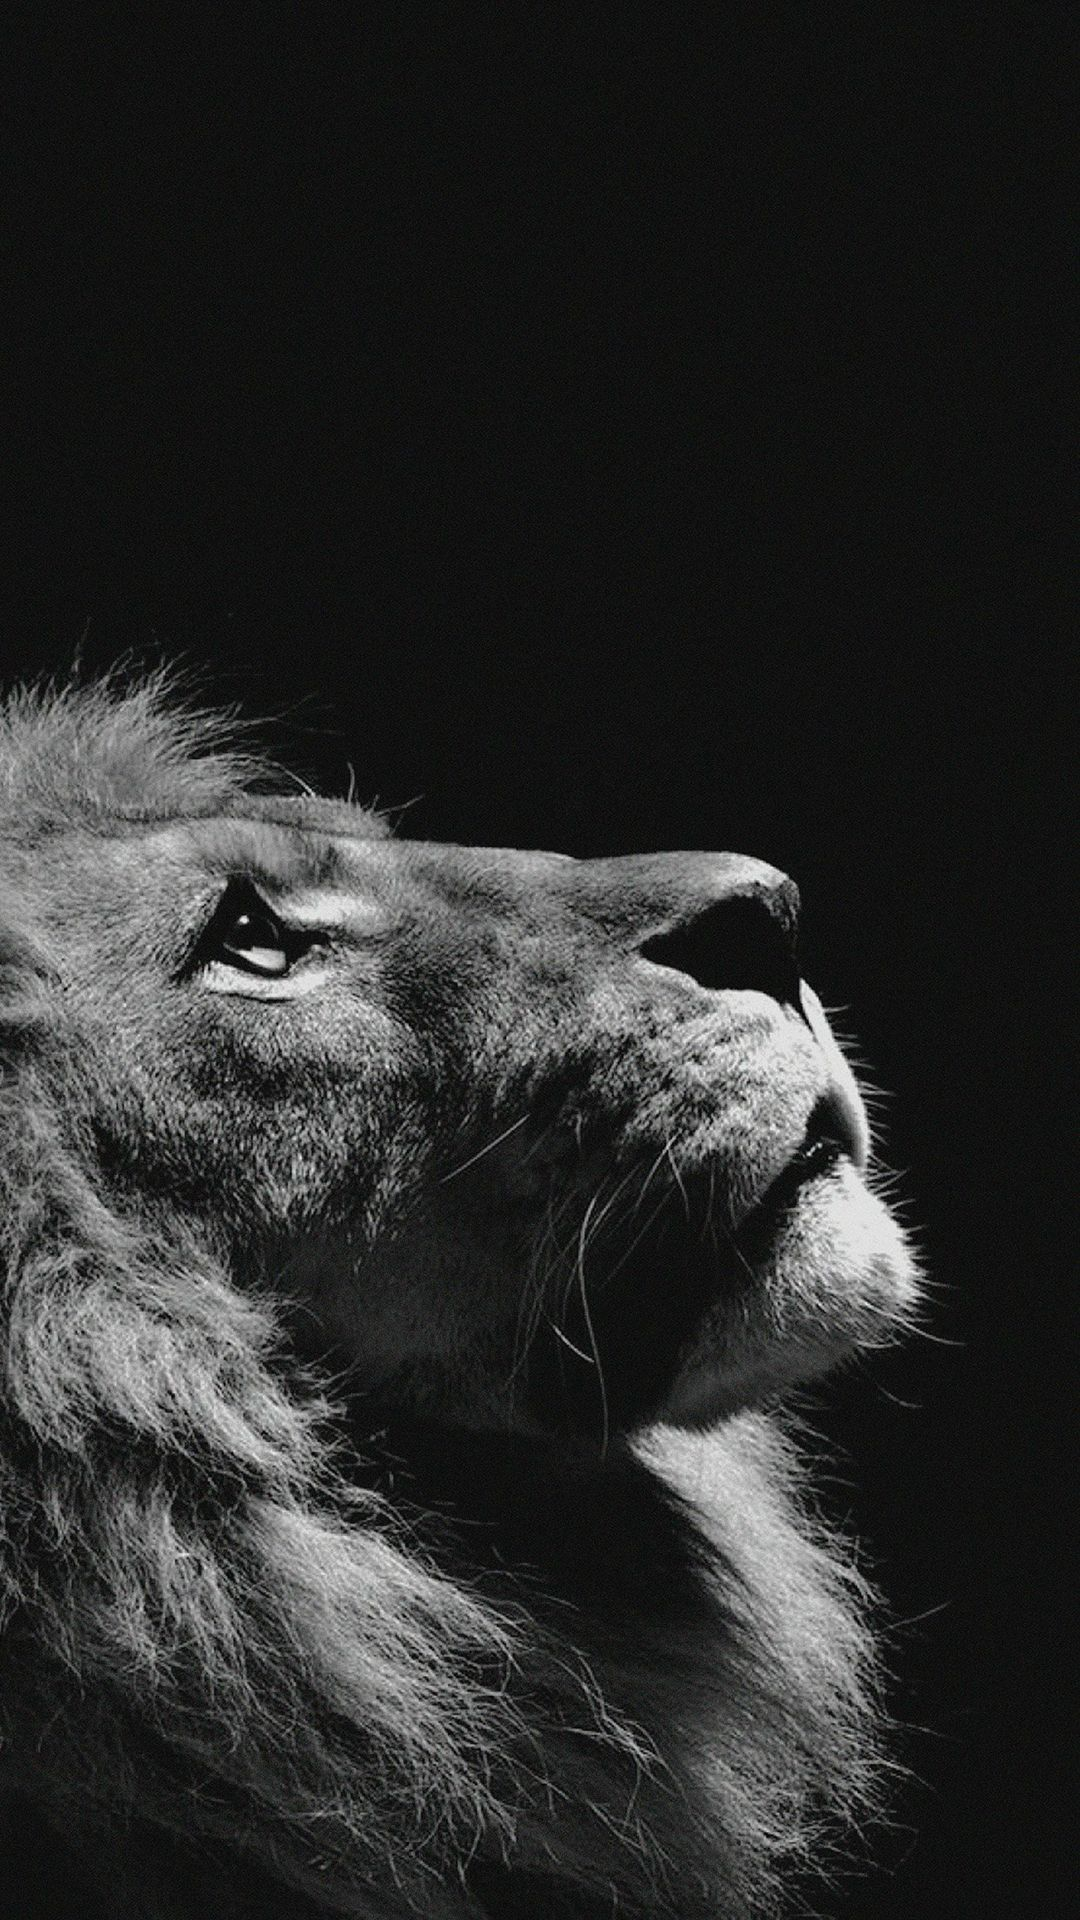 Lion Iphone Android Iphone Desktop Hd Backgrounds Wallpapers 1080p 4k 124964 Hdwallpa Iphone Wallpaper Photography Animal Wallpaper Dark Wallpaper